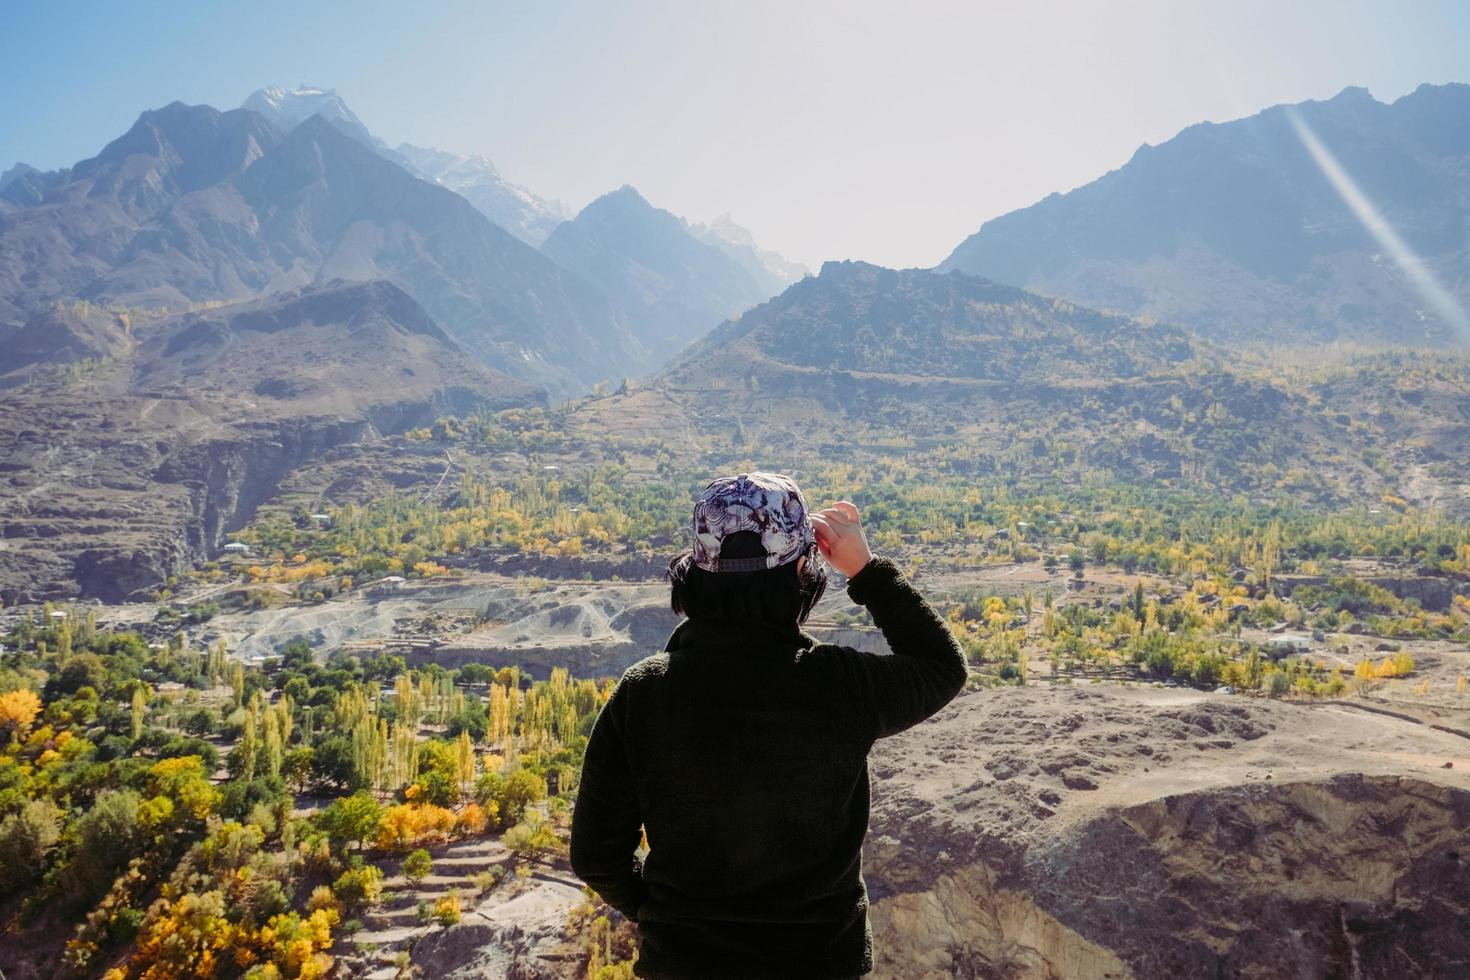 A girl viewing landscape scenery  photo